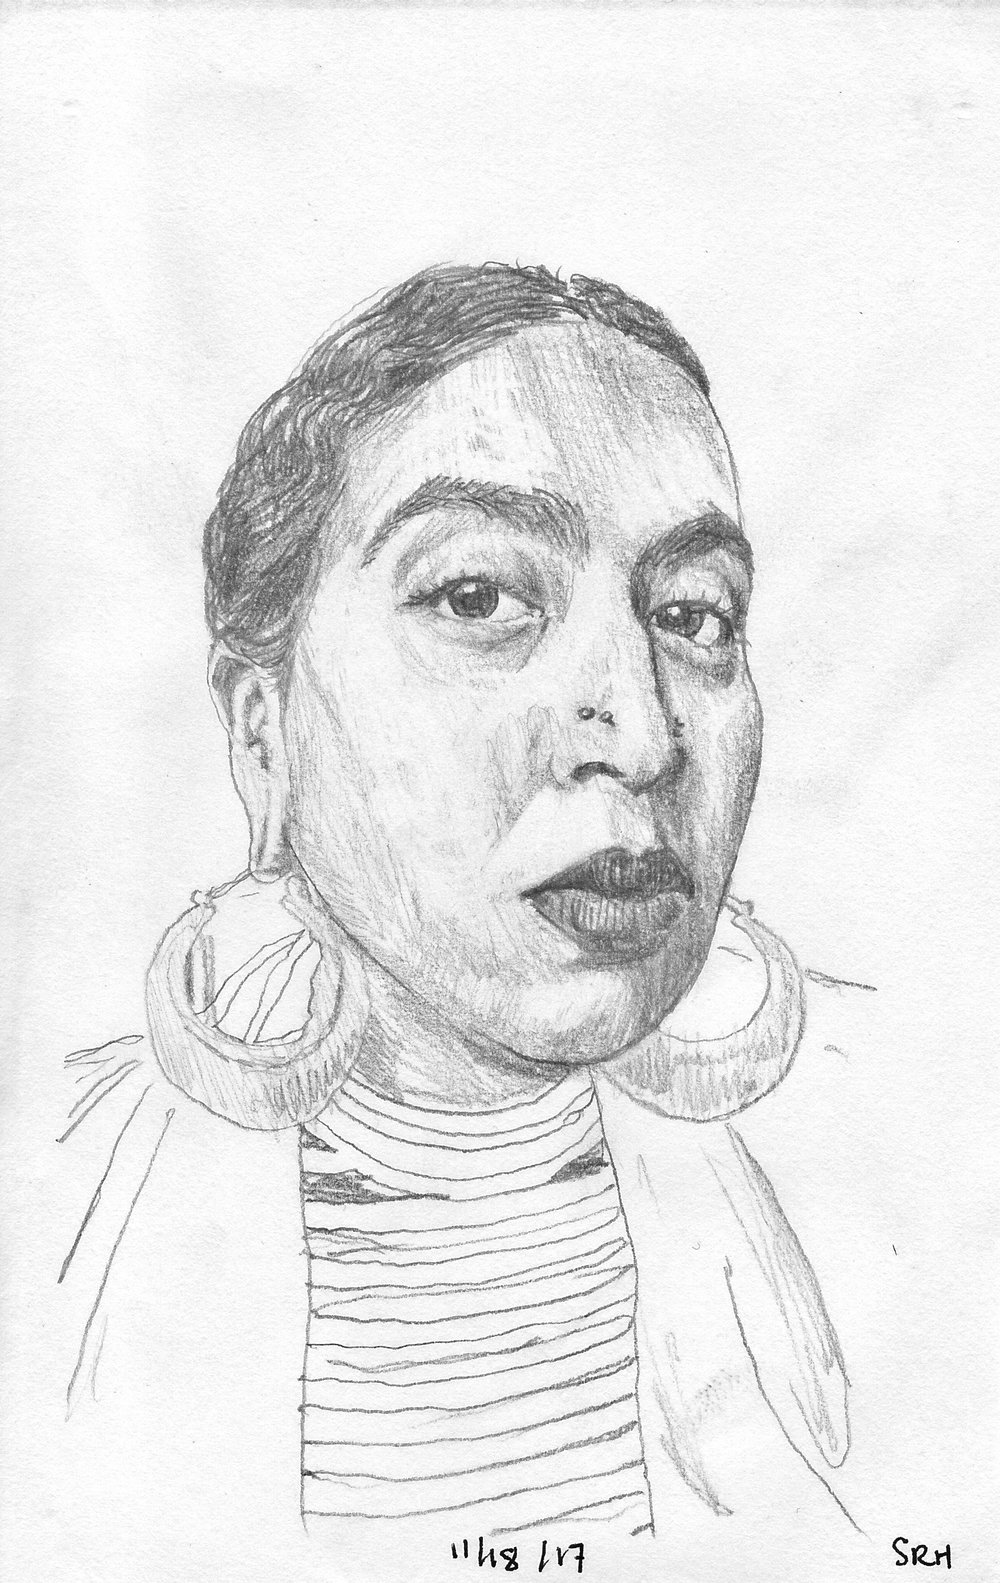 Briana Ureña-Ravelo is a 27 year old femme first generation Afro-Dominicana writer and poet based in West Michigan. She is a community organizer, intersectional womanist, freelance writer, artist, poet, activist, thinker, and dreamer. Her interests include music, language and words, anti-fascism and resistance, shows and the all-ages/punk scene, Afro-Caribbean spirituality and culture, radical and community politics, decolonization, social justice organizing and theory, fashion and clothes, cooking, body modifications, her calico cat Shampoo, and sweets.  Art by Sofia Ramirez Hernandez   briana@thesparrowsgr.com